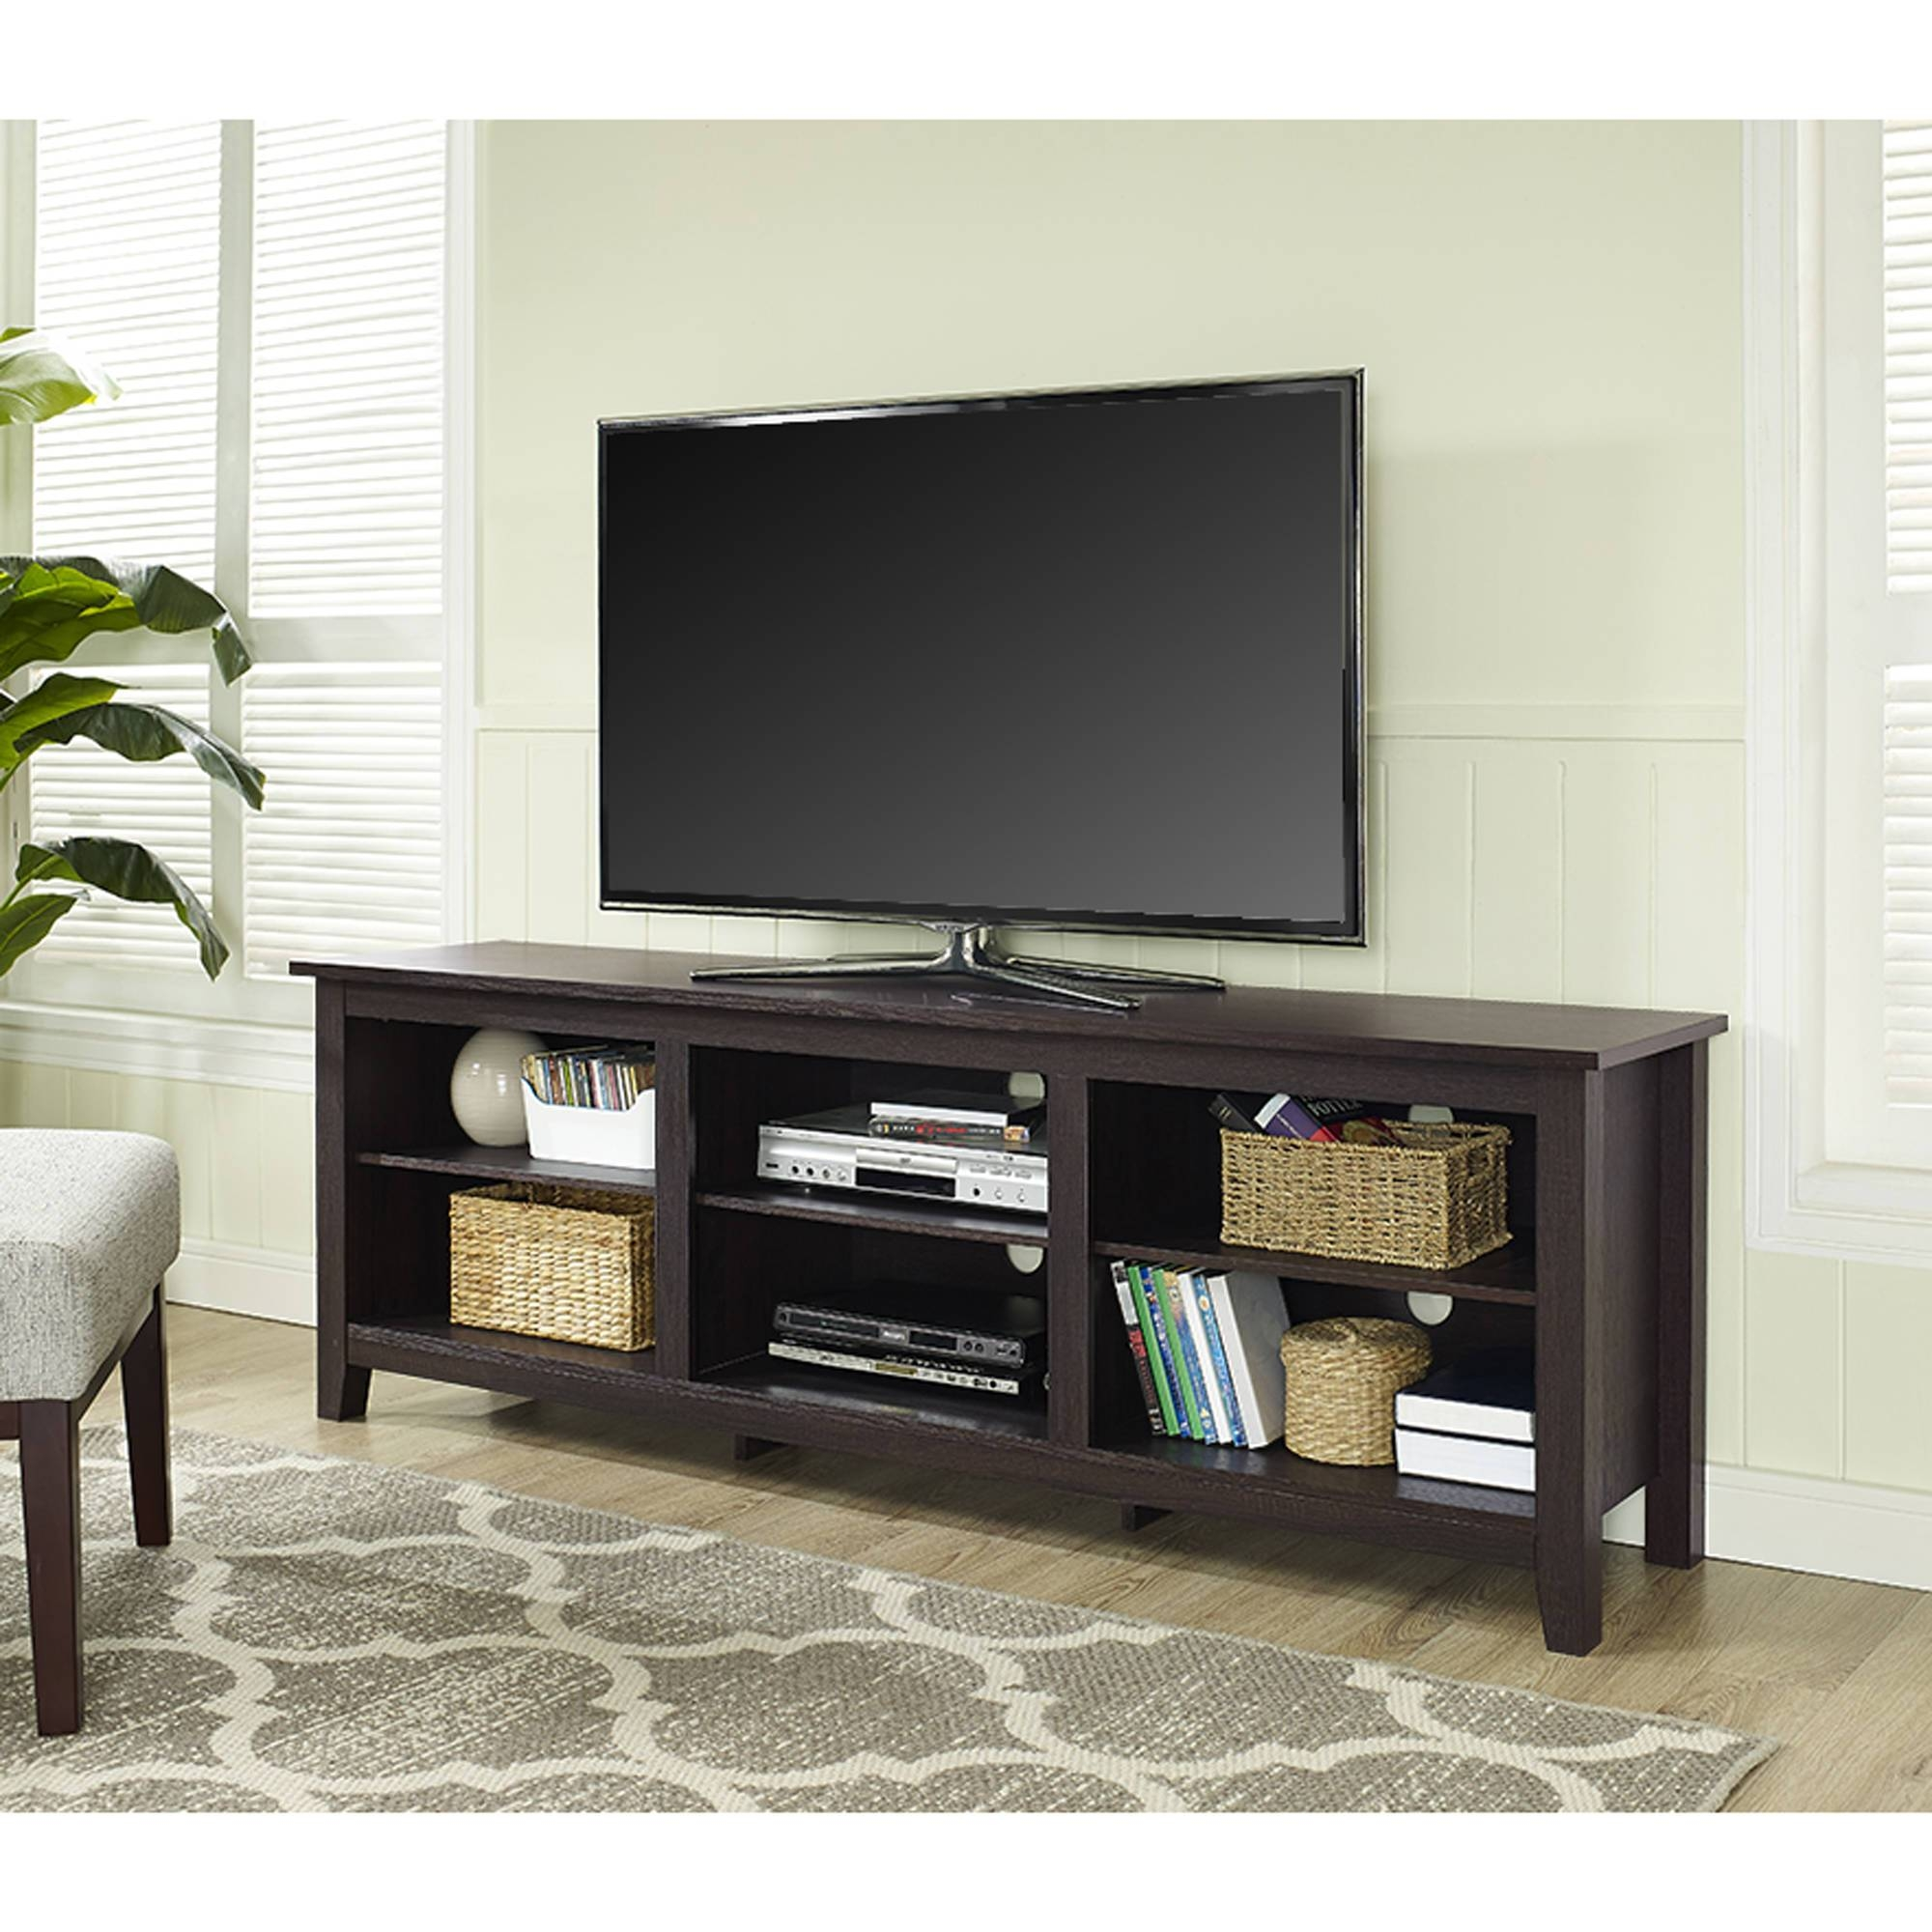 "Ameriwood Home Clark Tv Stand For Tvs Up To 70"", Espresso with regard to Tv Stands for 70 Inch Tvs (Image 3 of 15)"